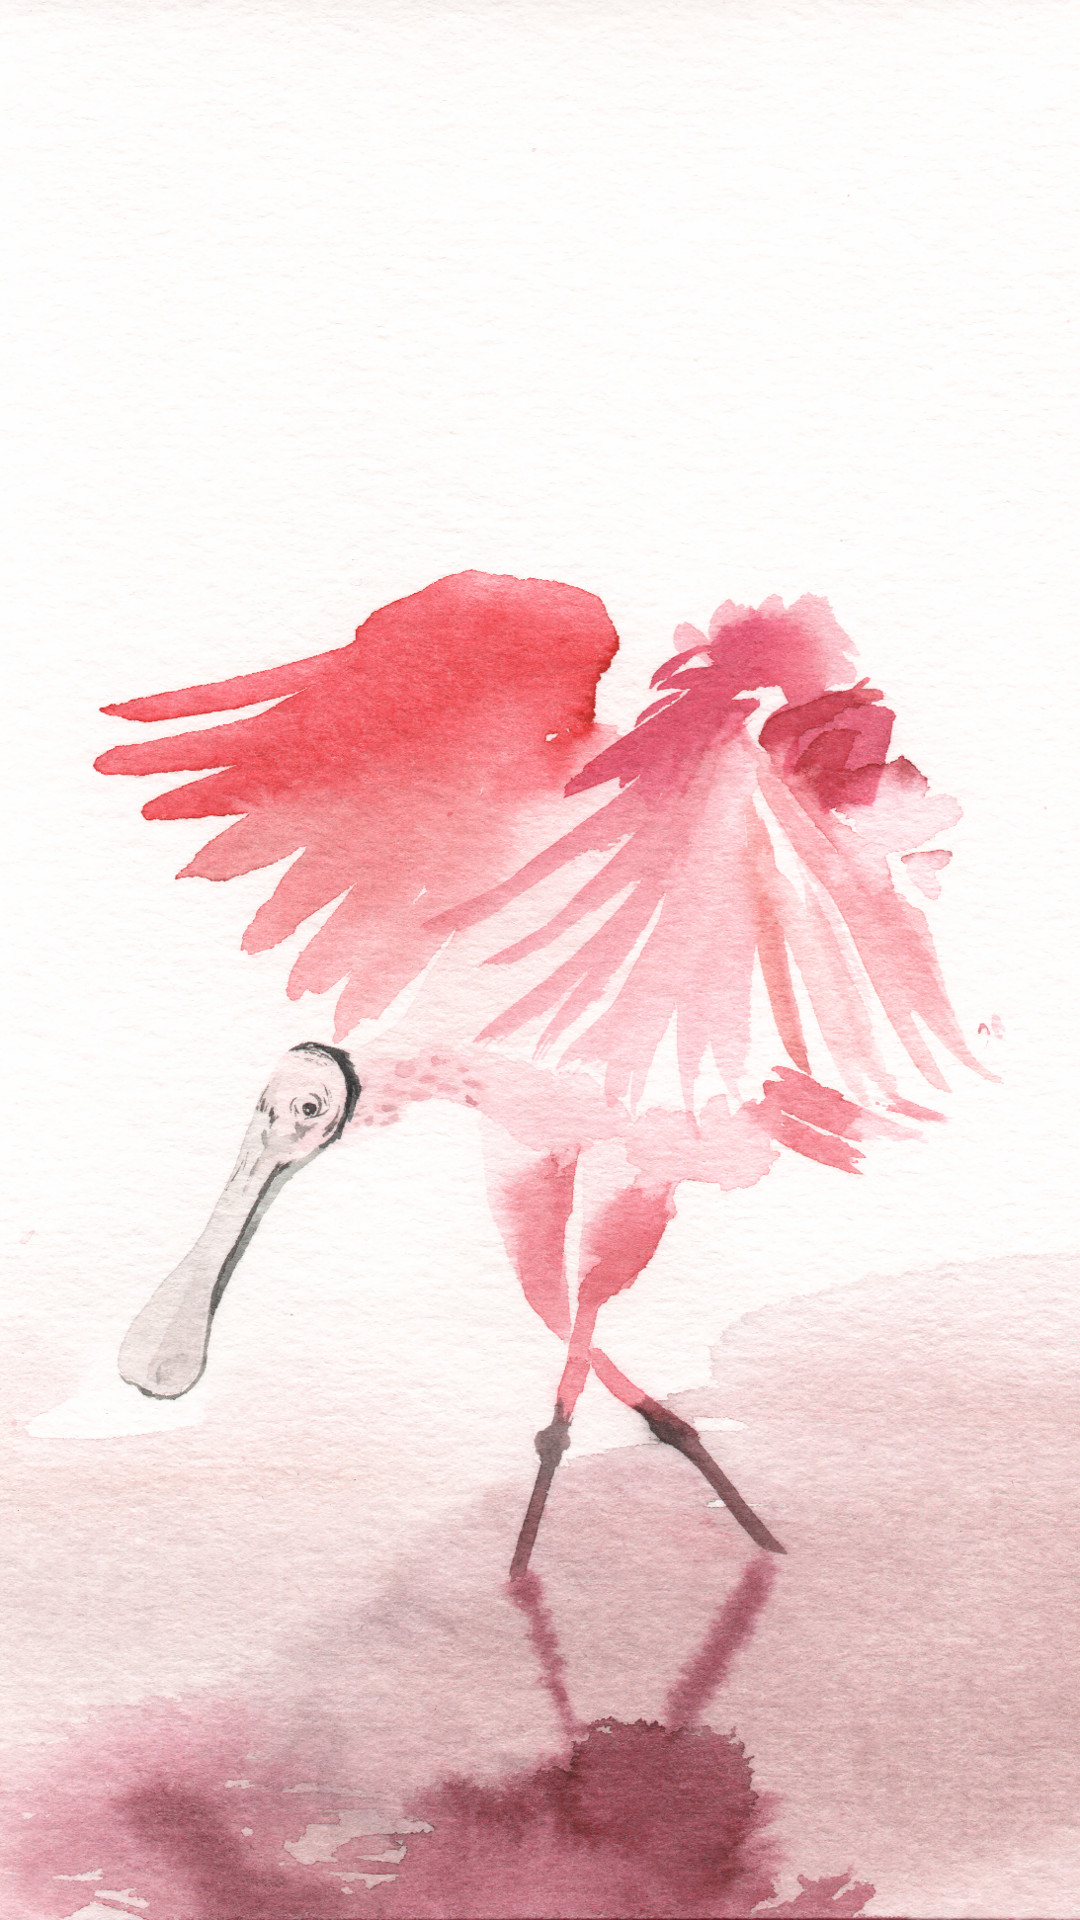 Roseate spoonbill watercolour illustration